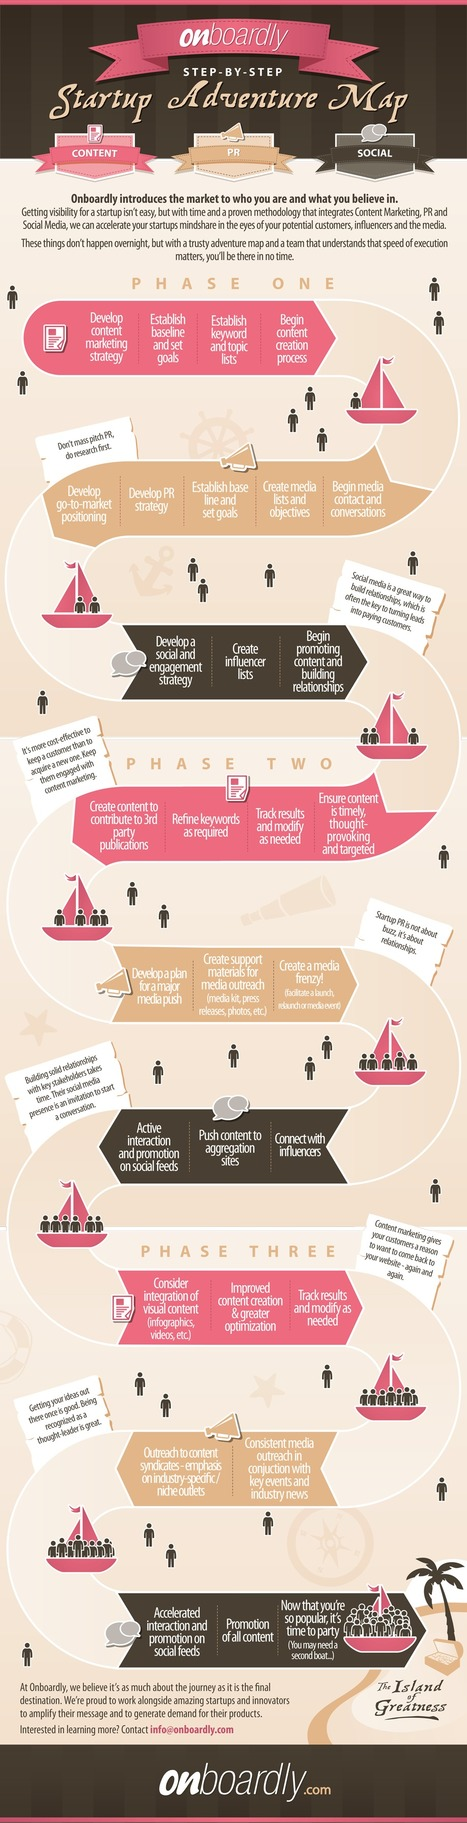 Steps On How to Acquire Customers For Your Startup [INFOGRAPHIC] | | EPIC Infographic | Scoop.it